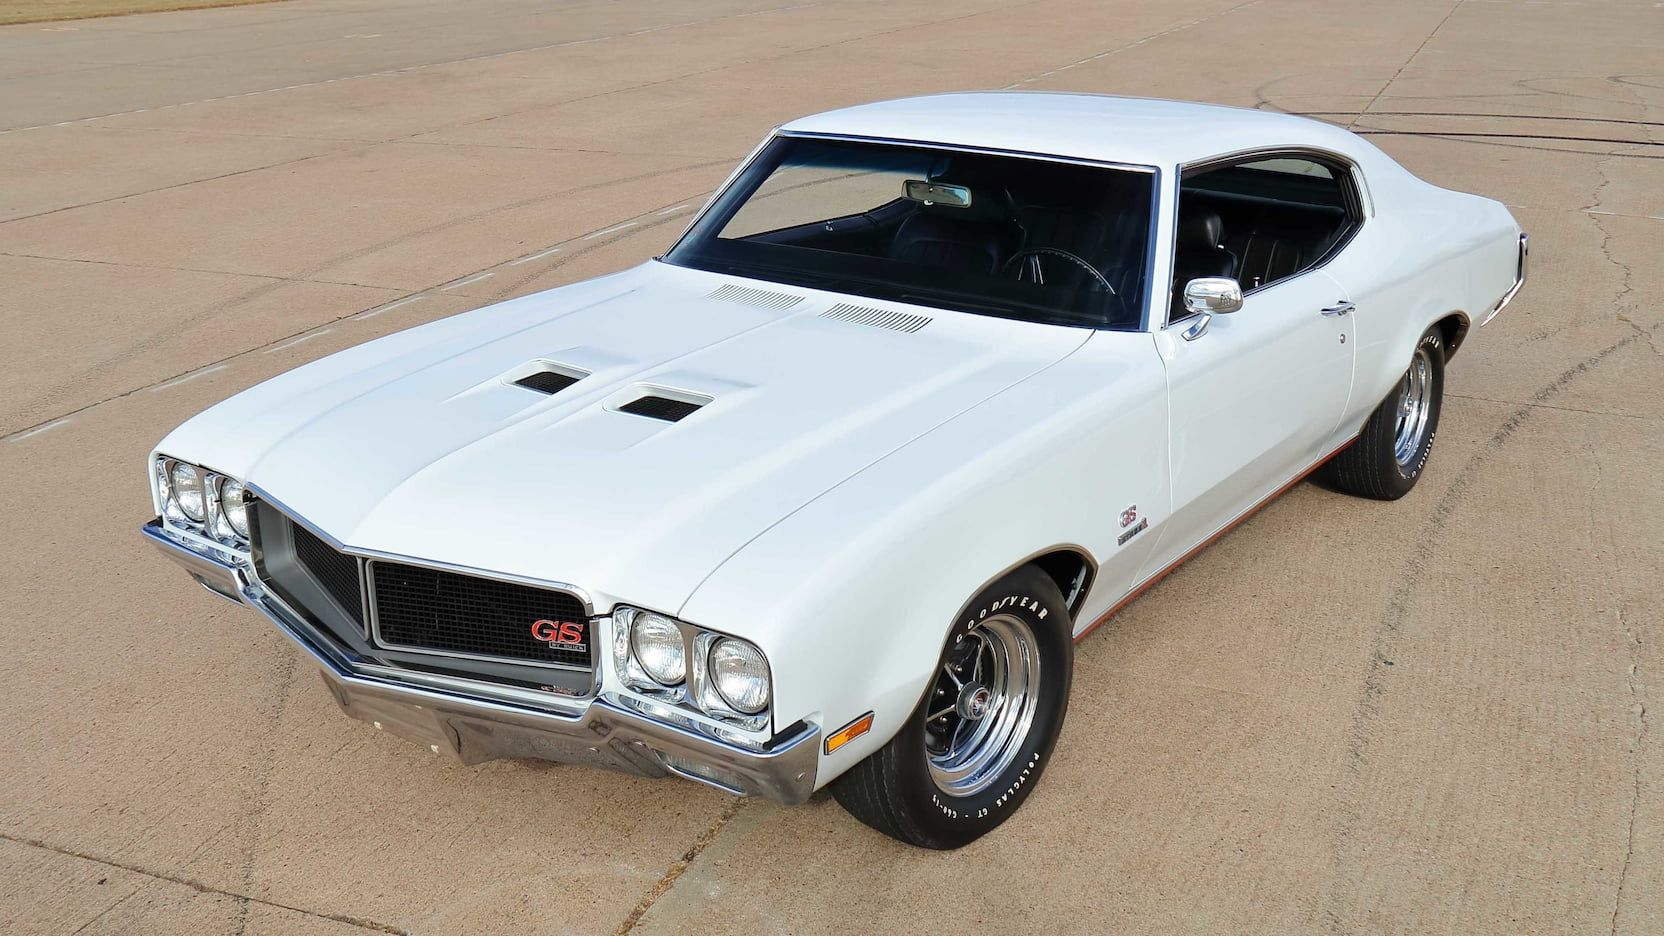 1970 Buick Gs Stage 1 R358 Kissimmee 2020 Buick Gs Buick Buick Muscle Car